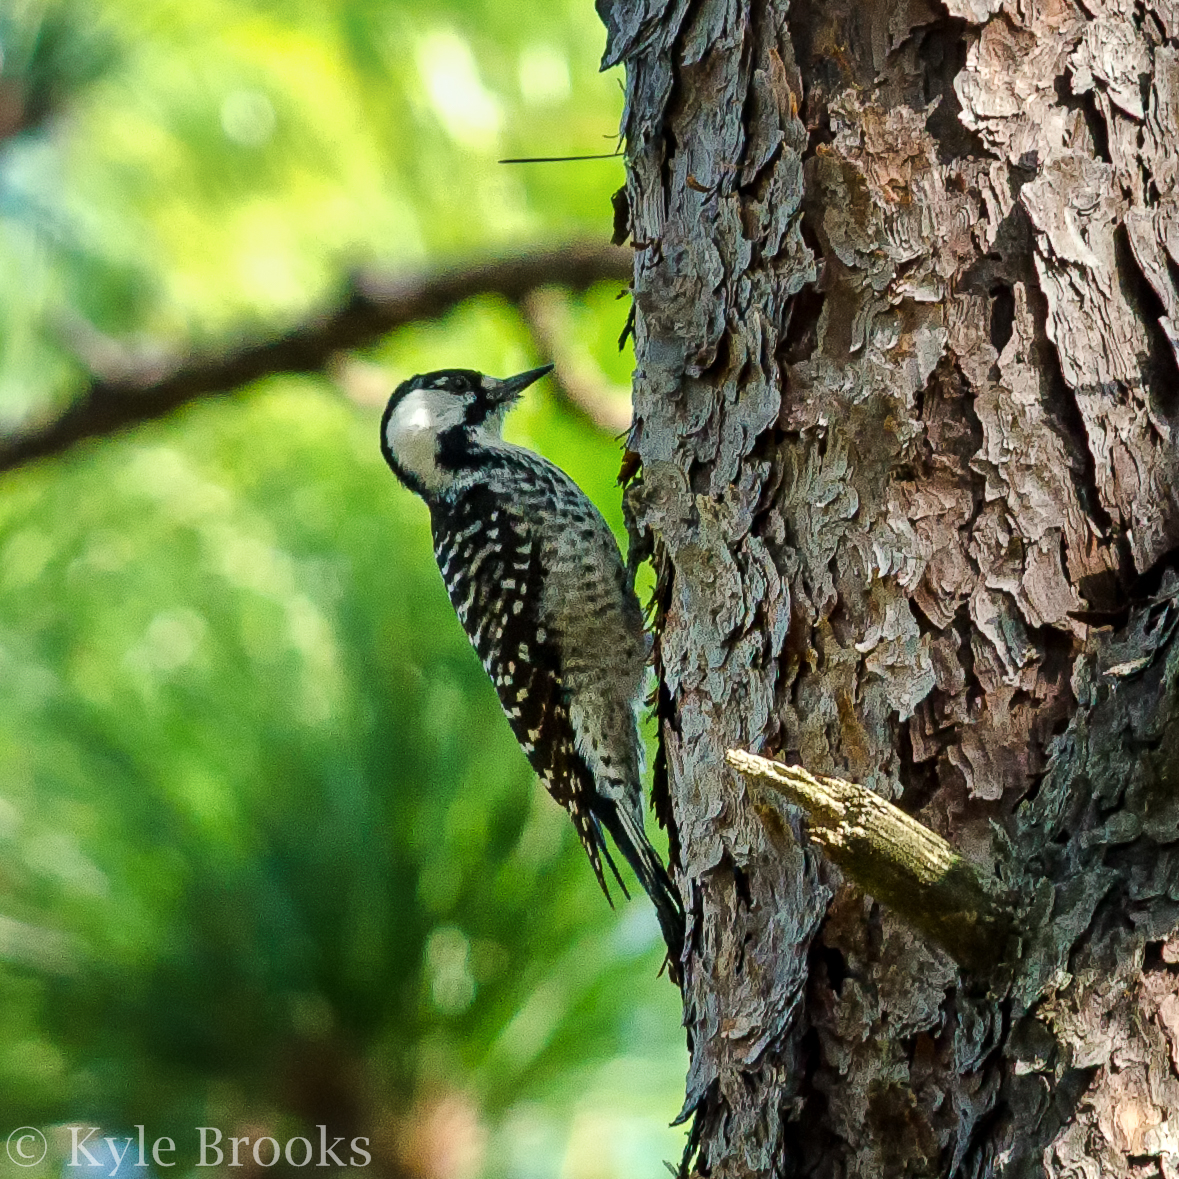 Red-Cockaded Woodpecker and Longleaf Pine Forests